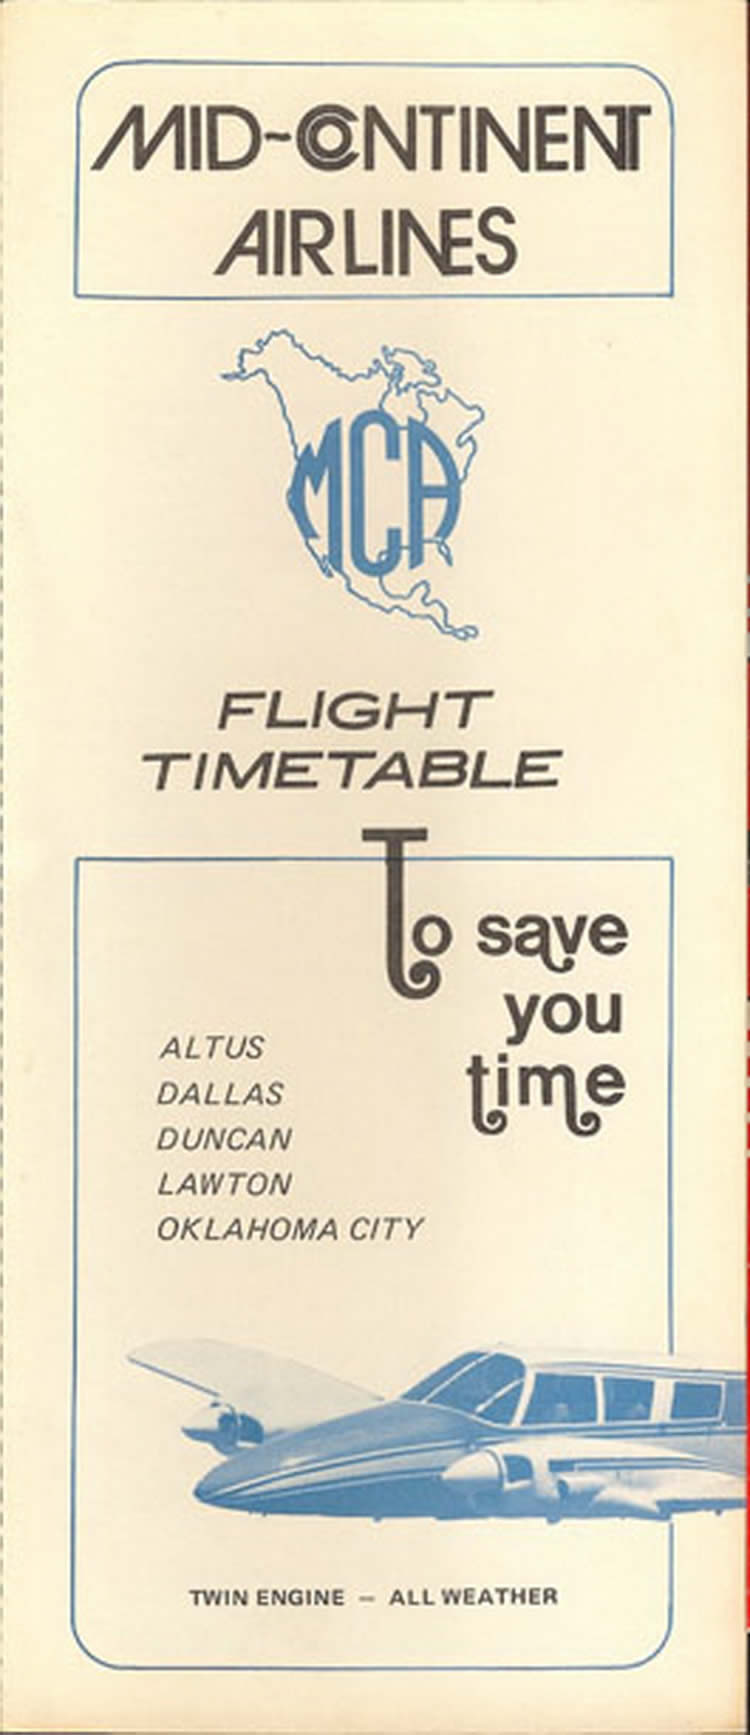 vintage airline timetable for Mid Continent Airlines